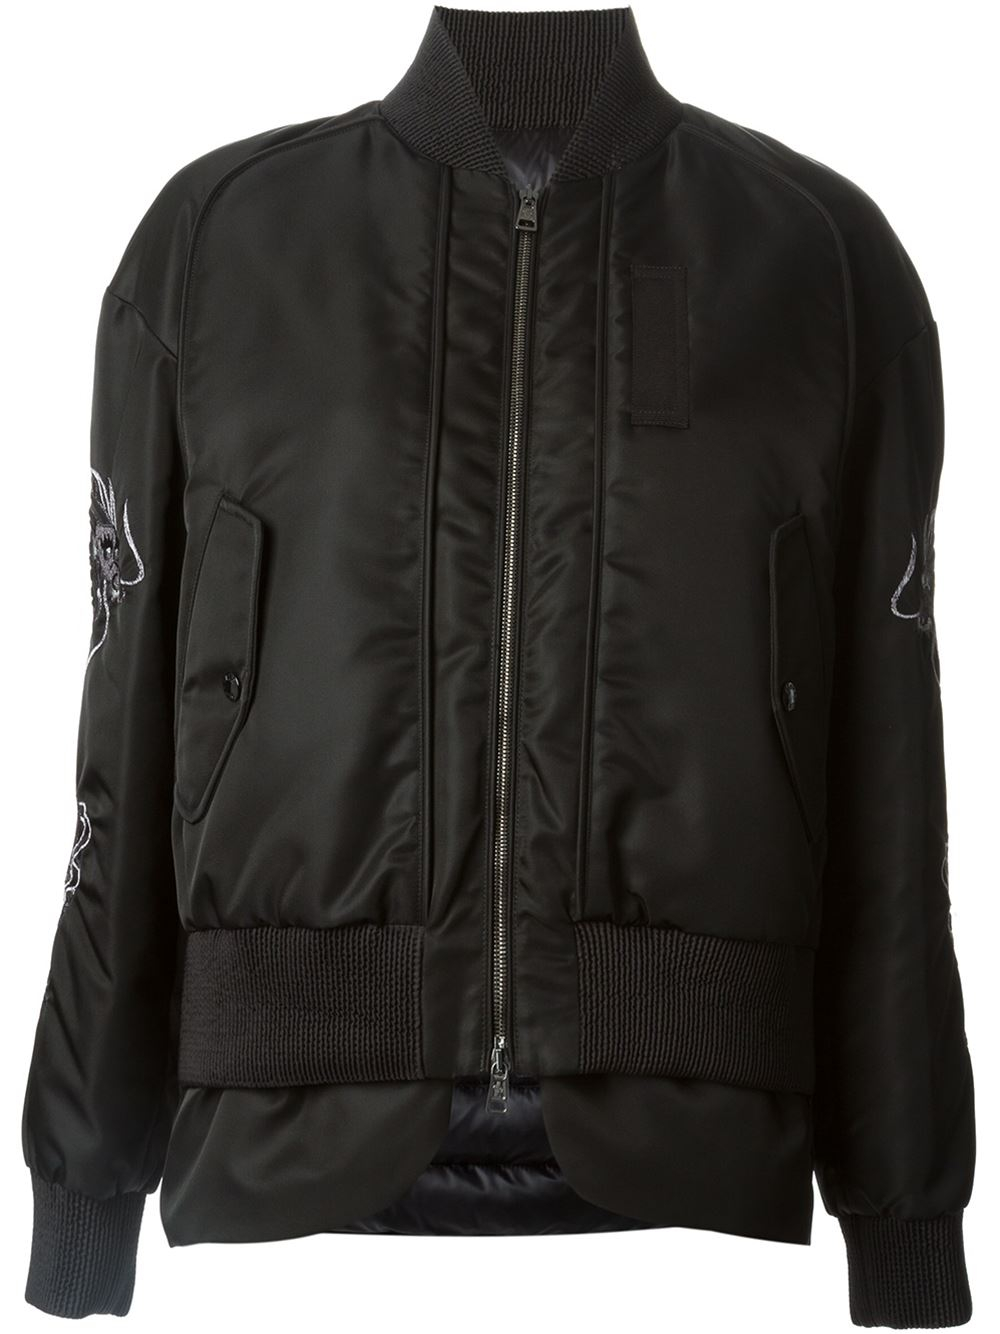 Moncler dragon embroidered bomber jacket in black lyst